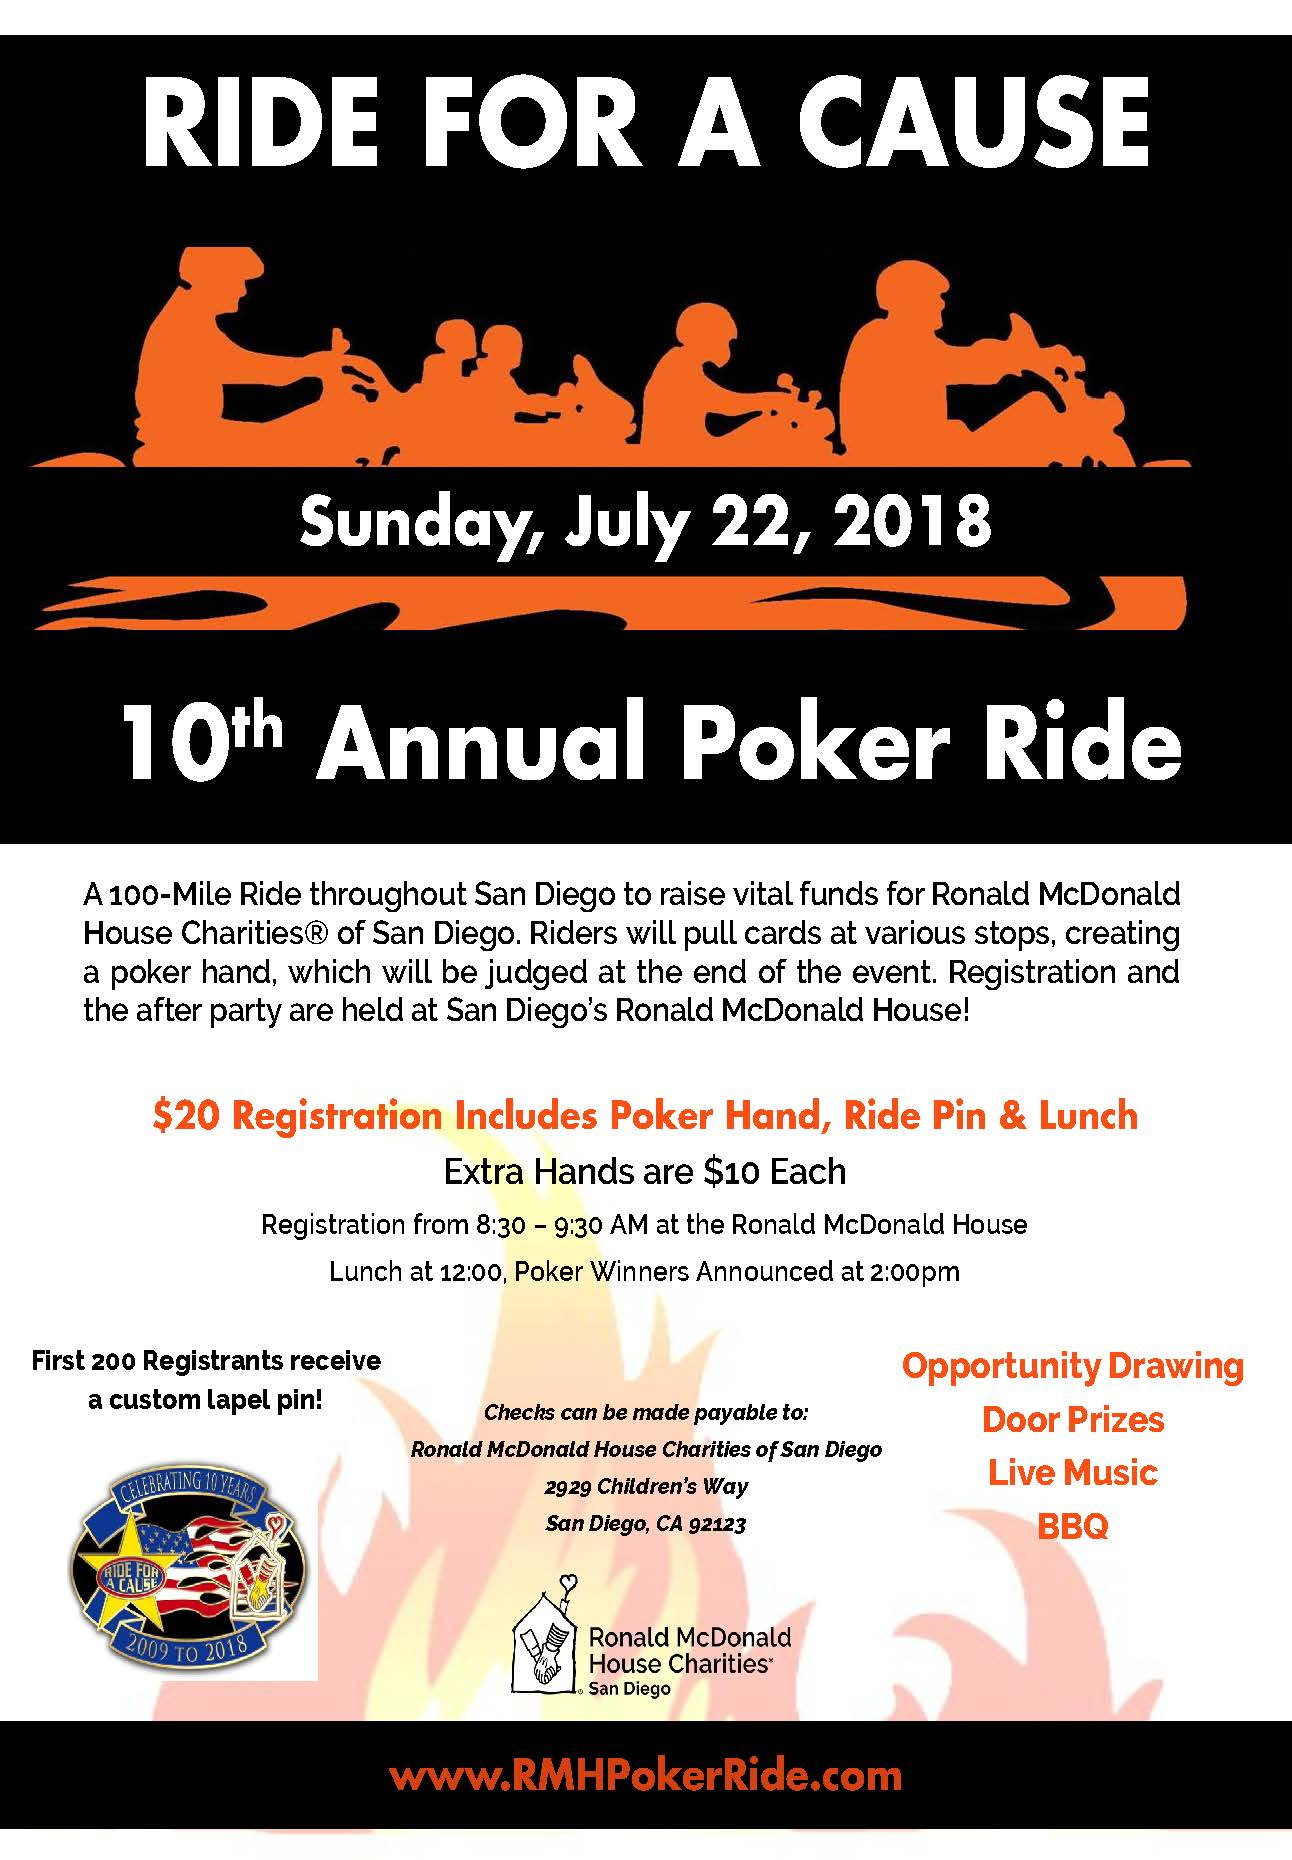 Ride for a Cause